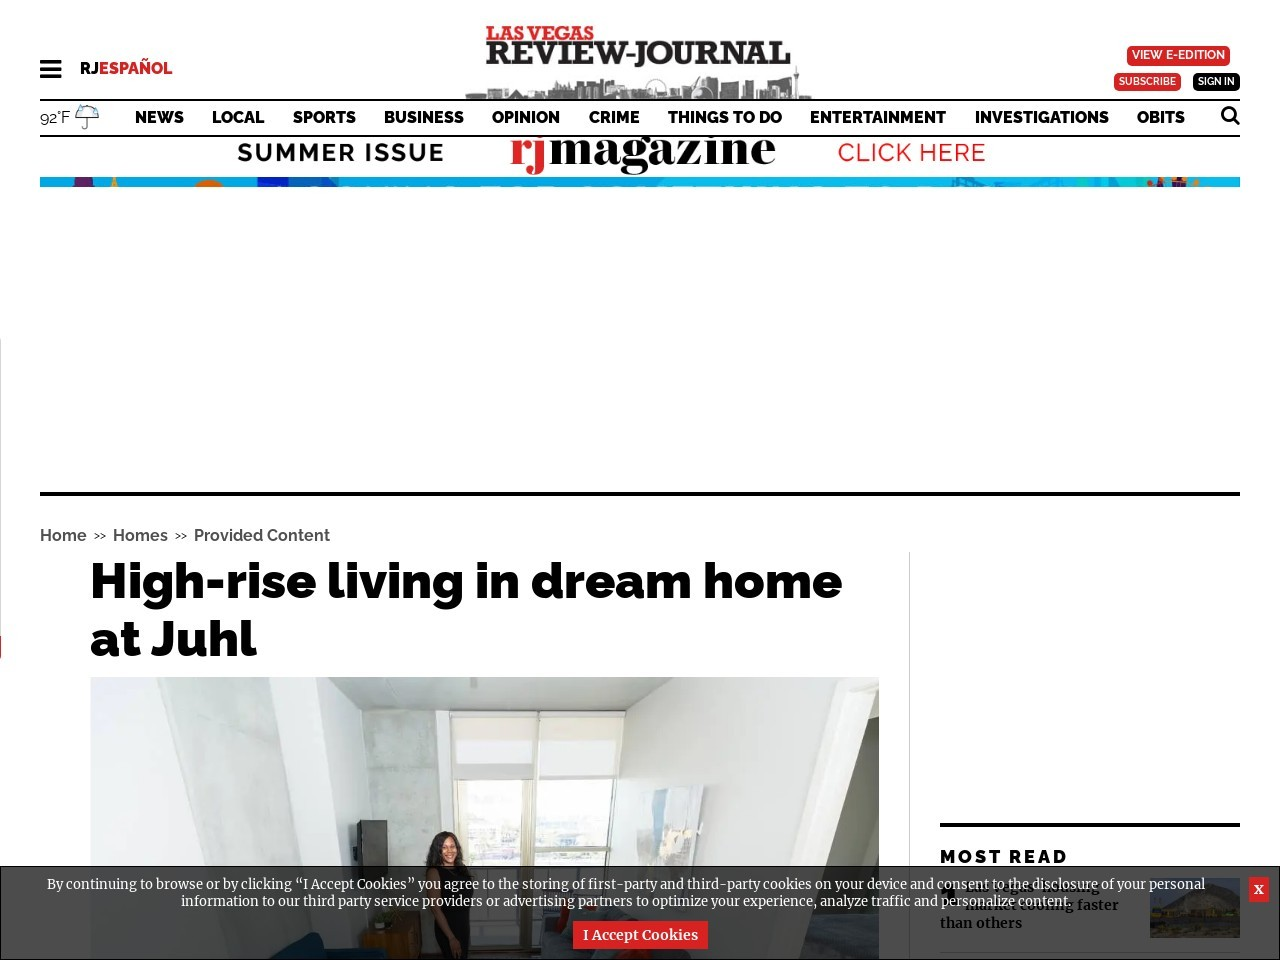 High-rise living in dream home at Juhl